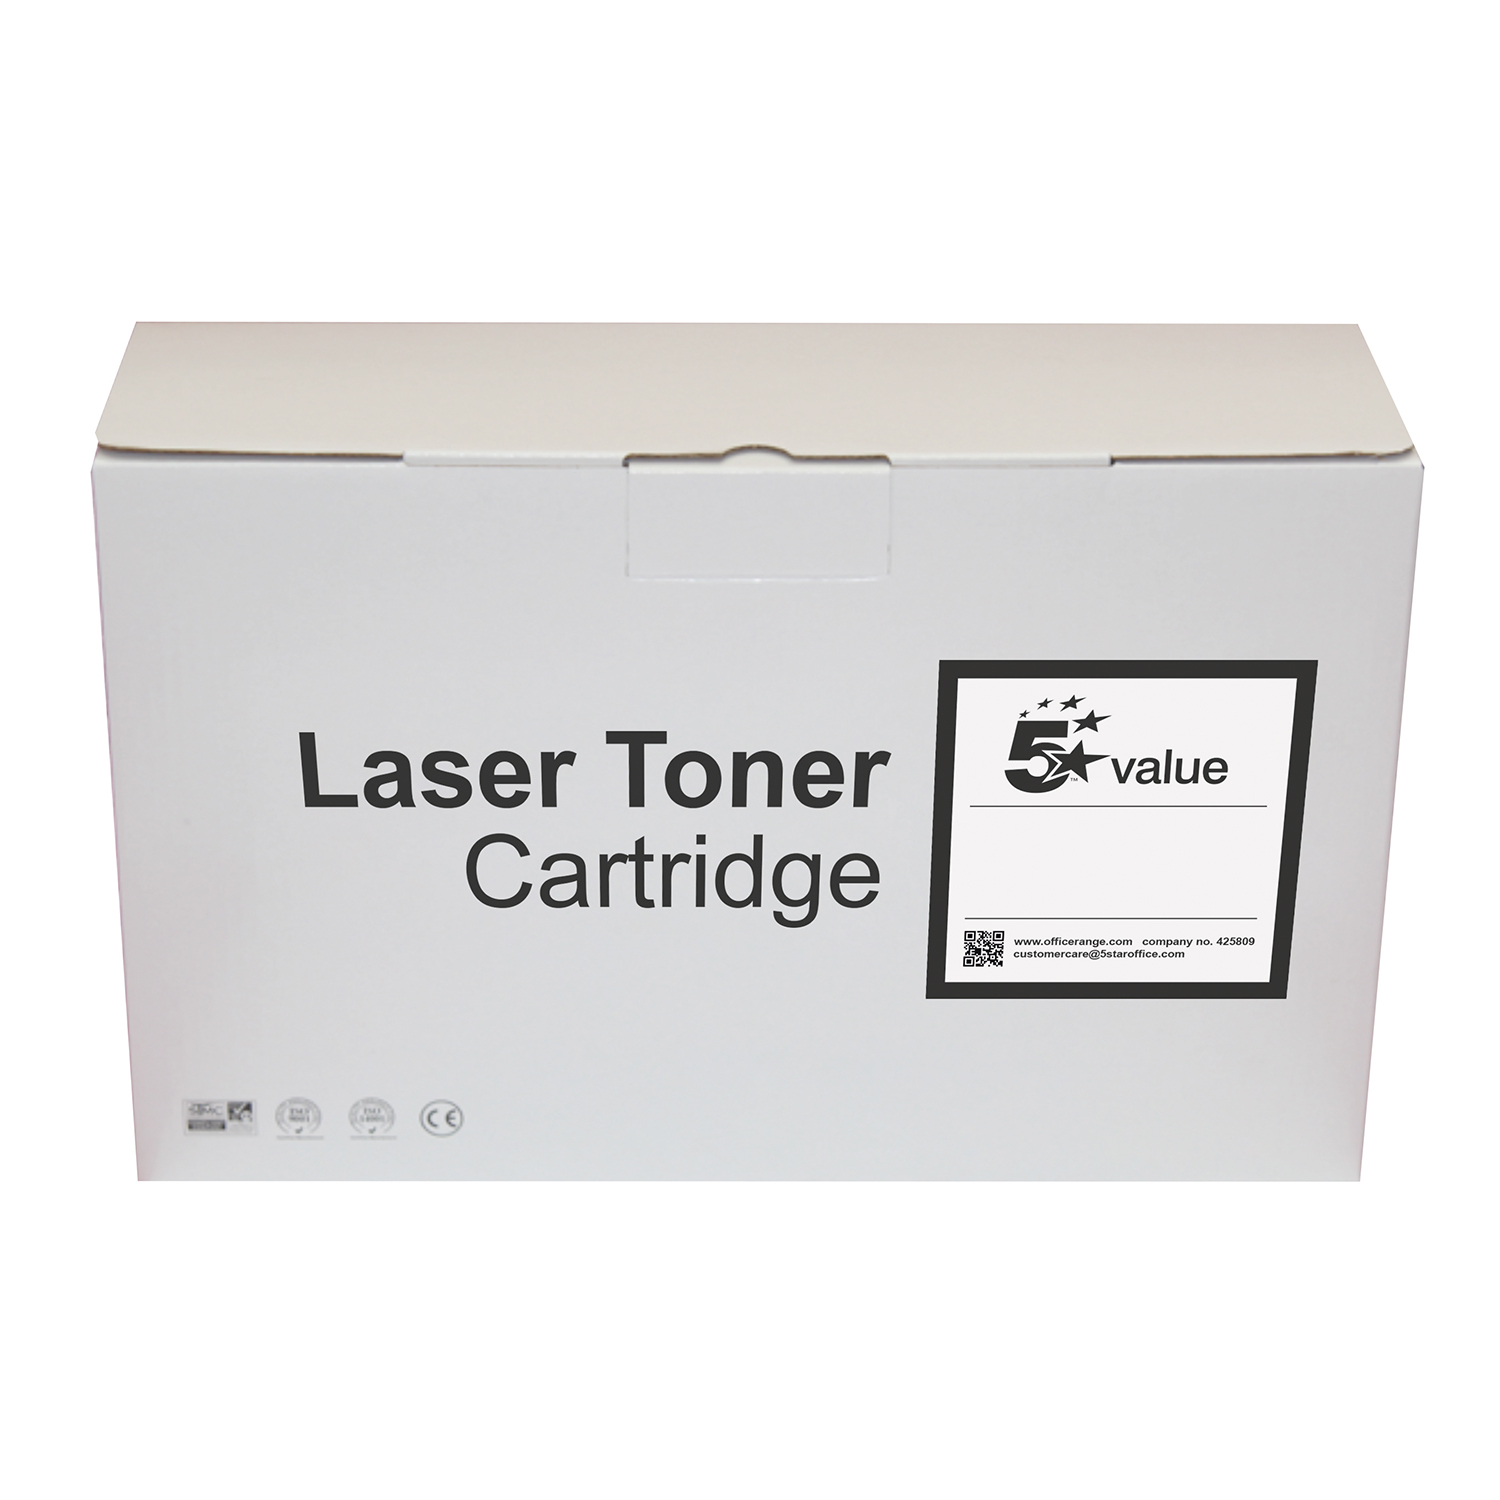 5 Star Value Remanufactured Laser Toner Cartridge Page Life 19500pp Black HP 90A CE390A Alternative